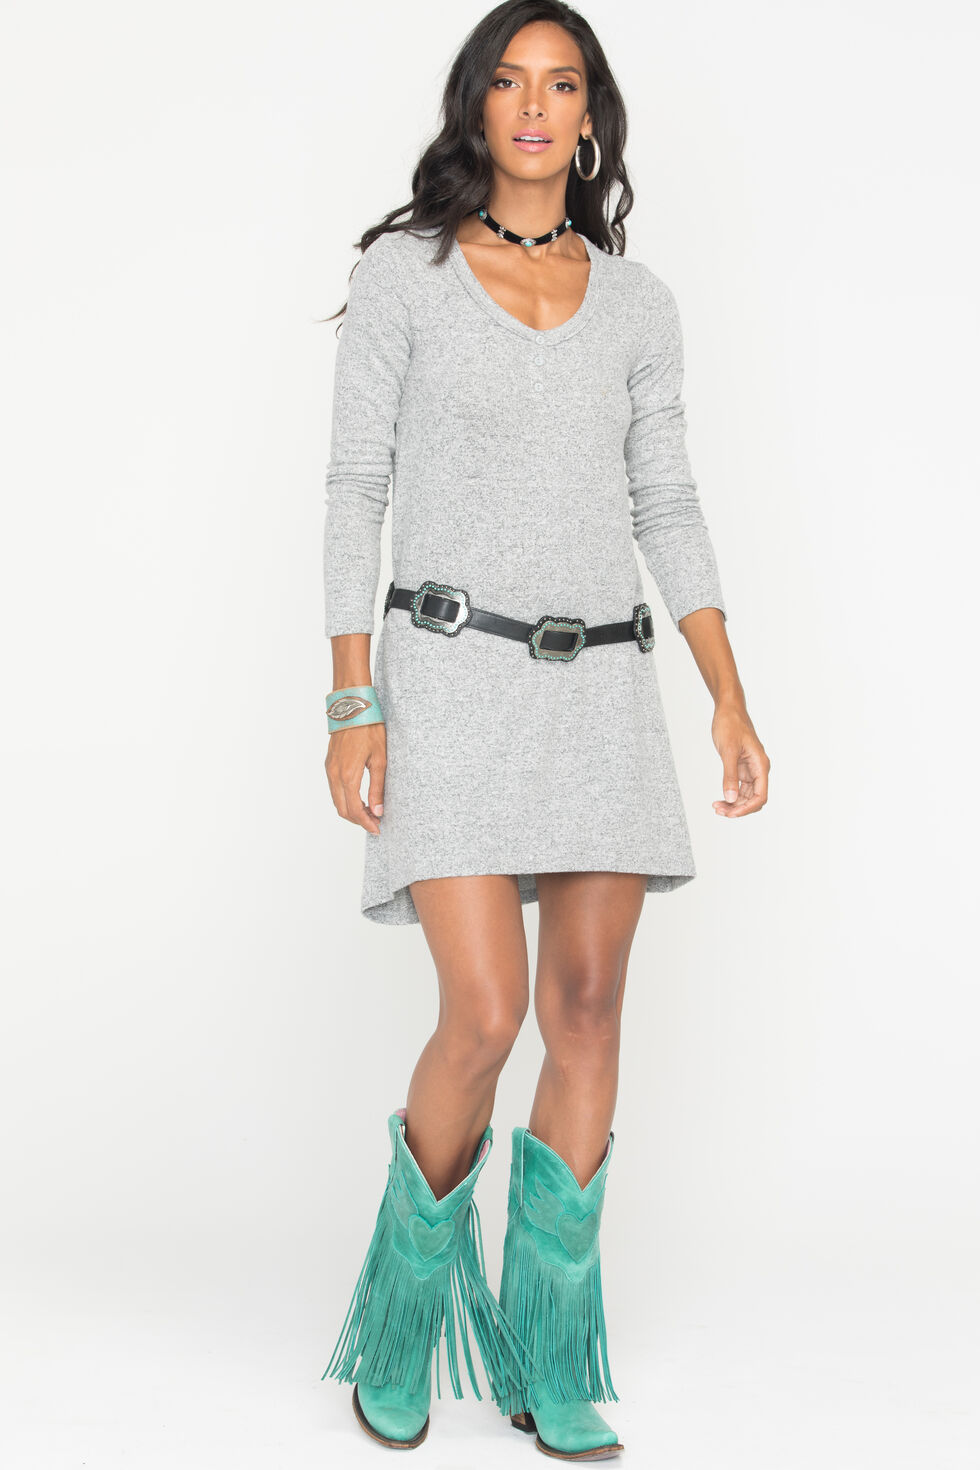 Z Supply Women's Grey Marled Sweater Dress , Hthr Grey, hi-res